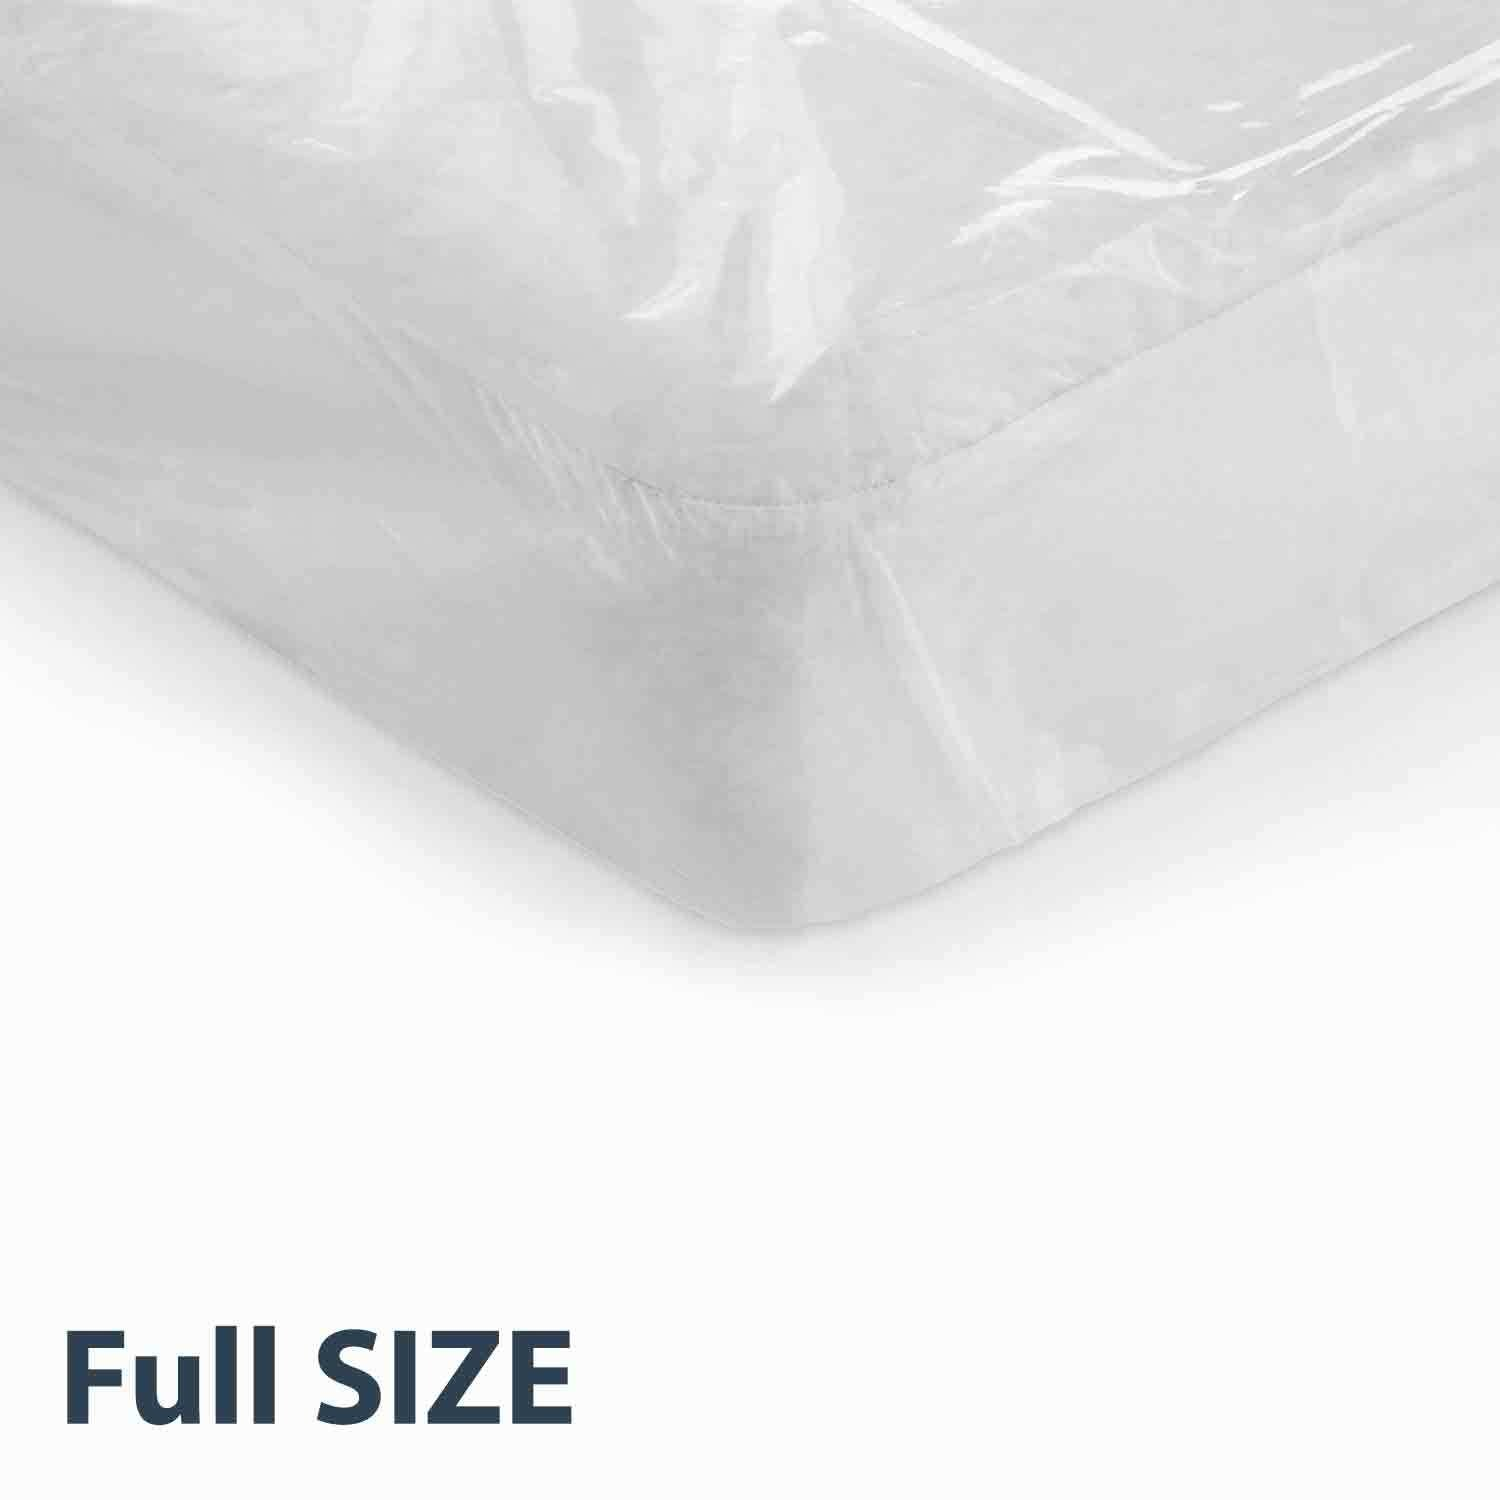 Full Size Mattress Bag Cover For Protection During Moving